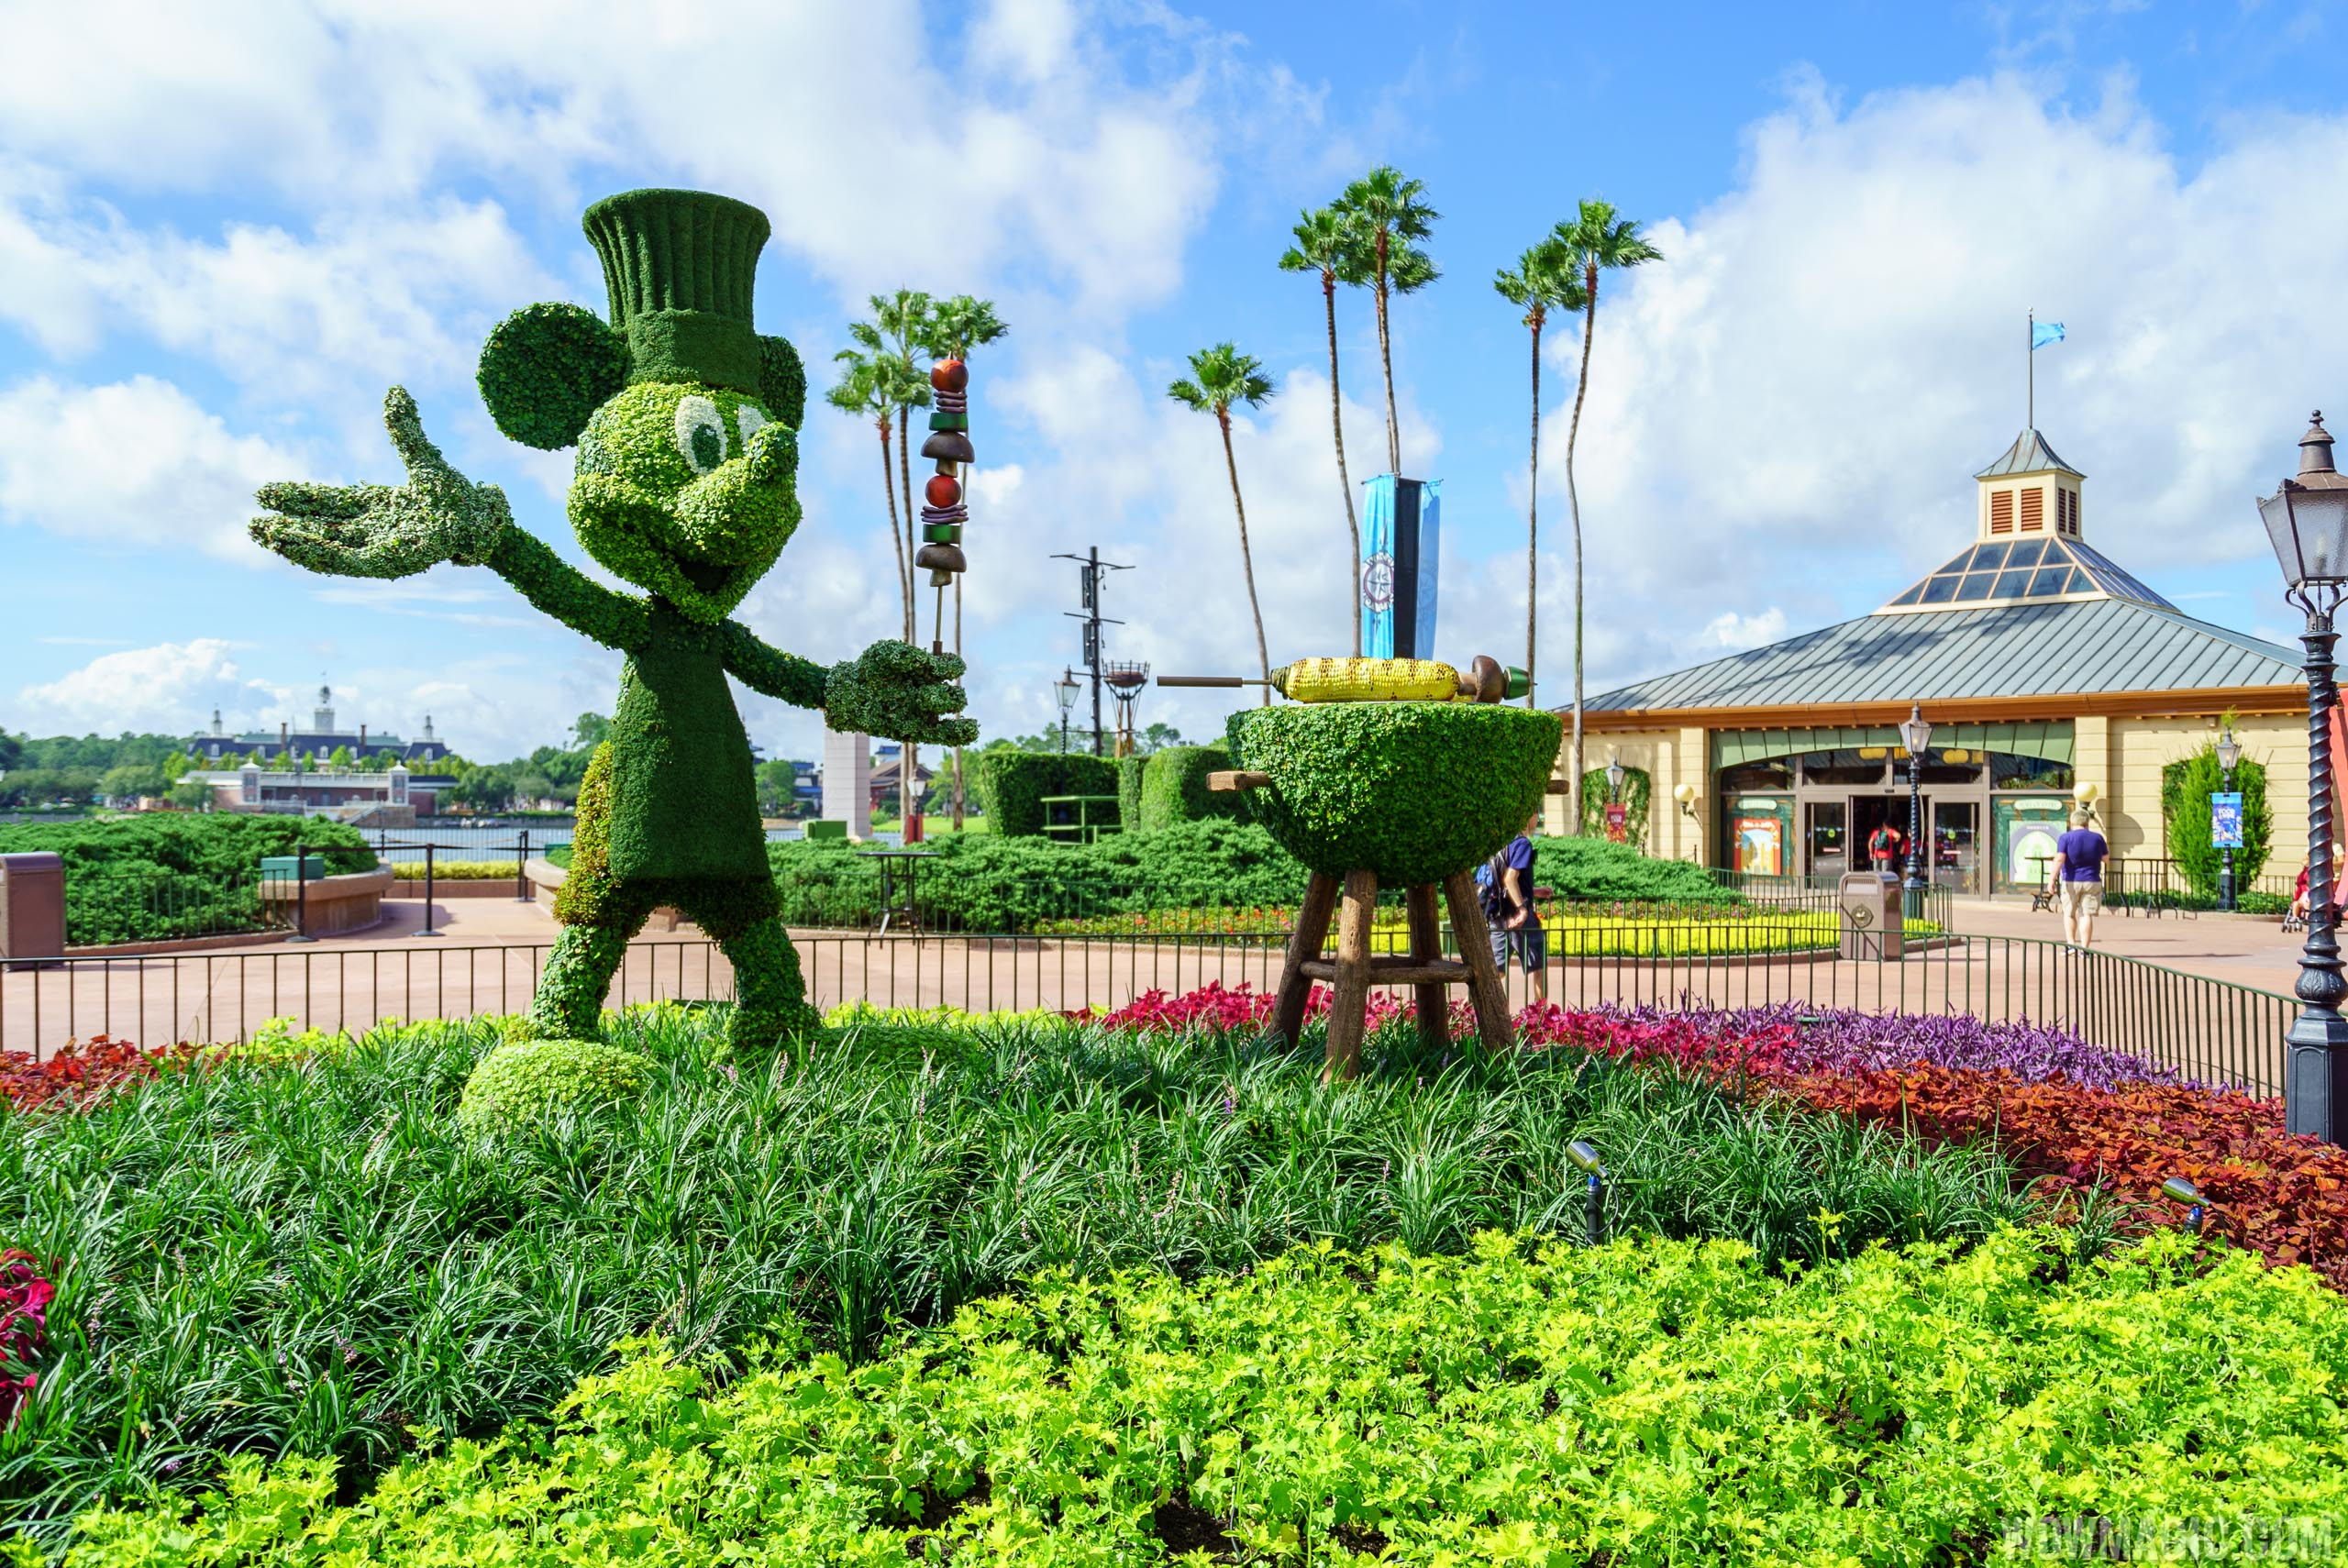 The Top 15 Best Booths at EPCOT\'s International Food & Wine Festival